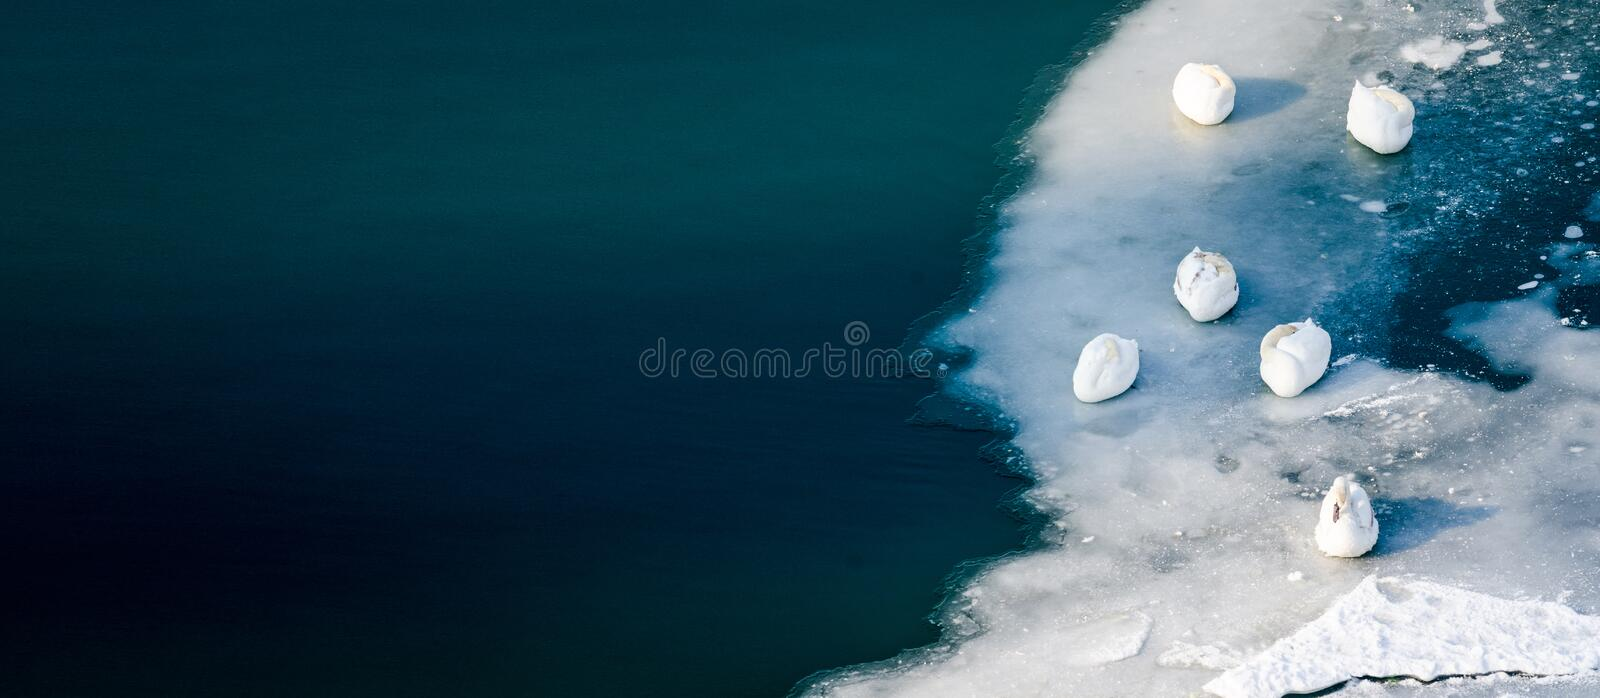 Flock of beautiful white mute swans sleeping on the ice of beautiful turquoise river or lake, free animals in nature concept. With copy space for text stock photos